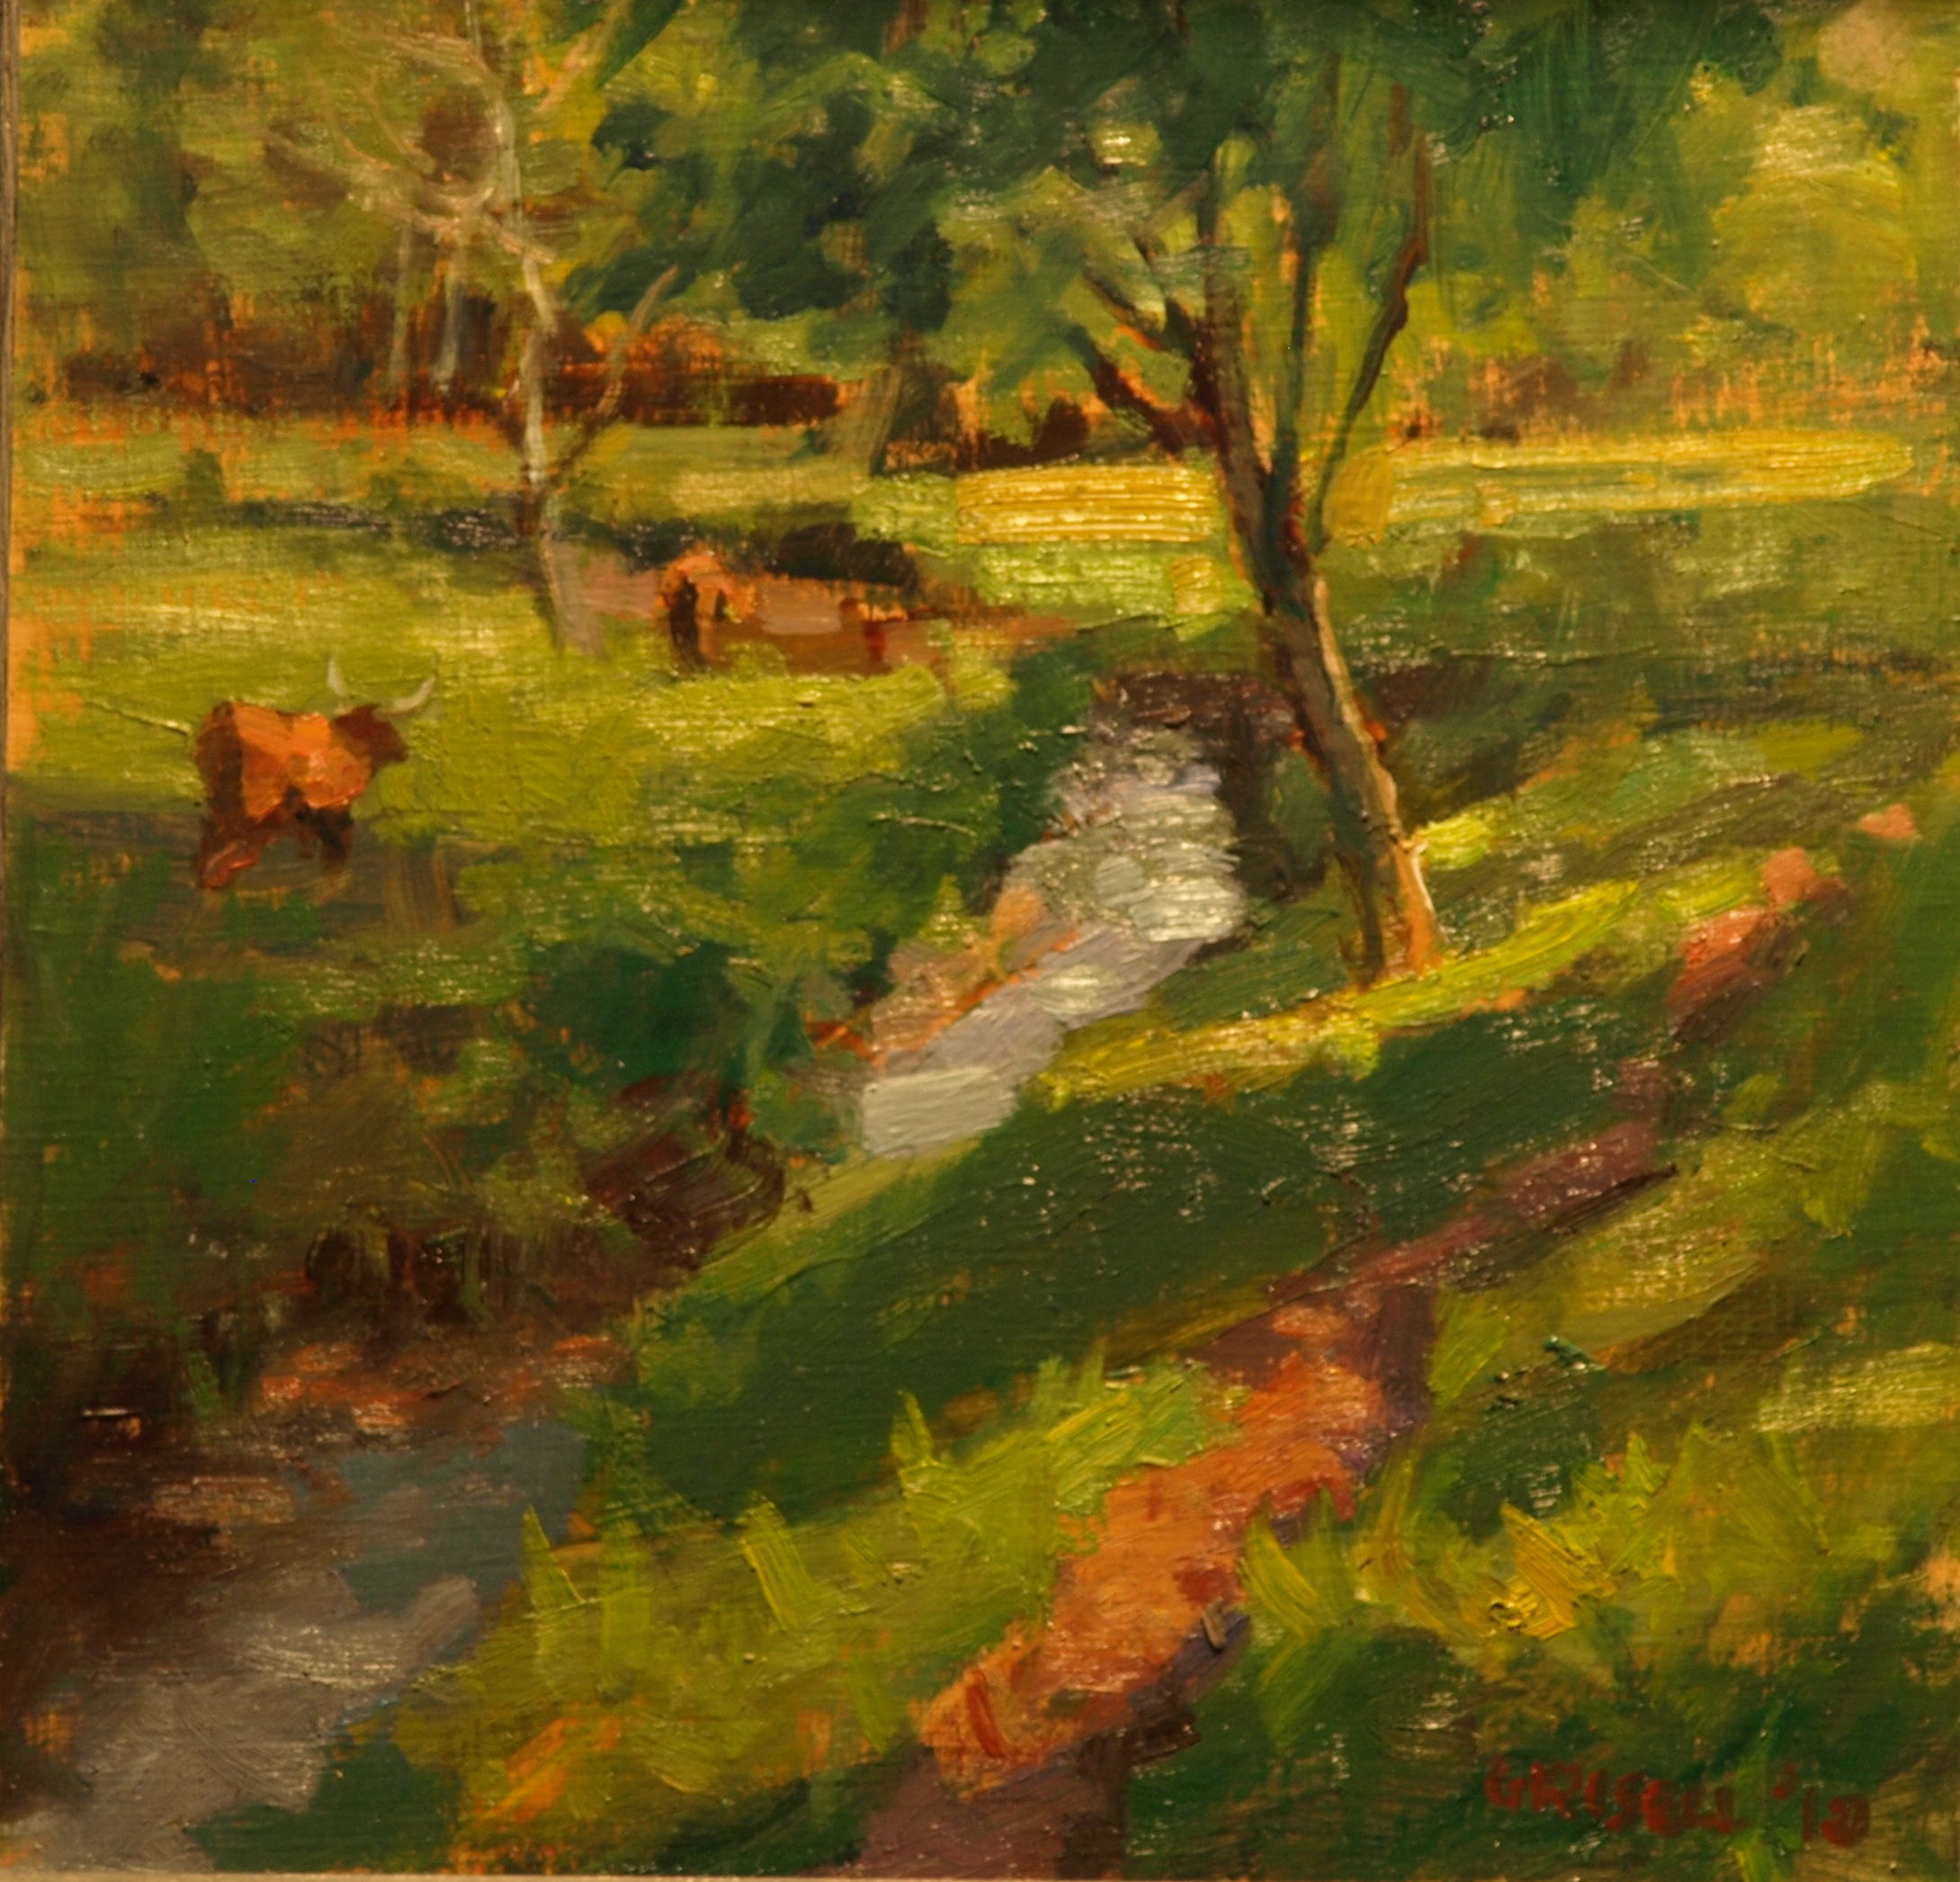 Highland Cattle, Oil on Linen on Panel, 12 x 12 Inches, by Susan Grisell, $275